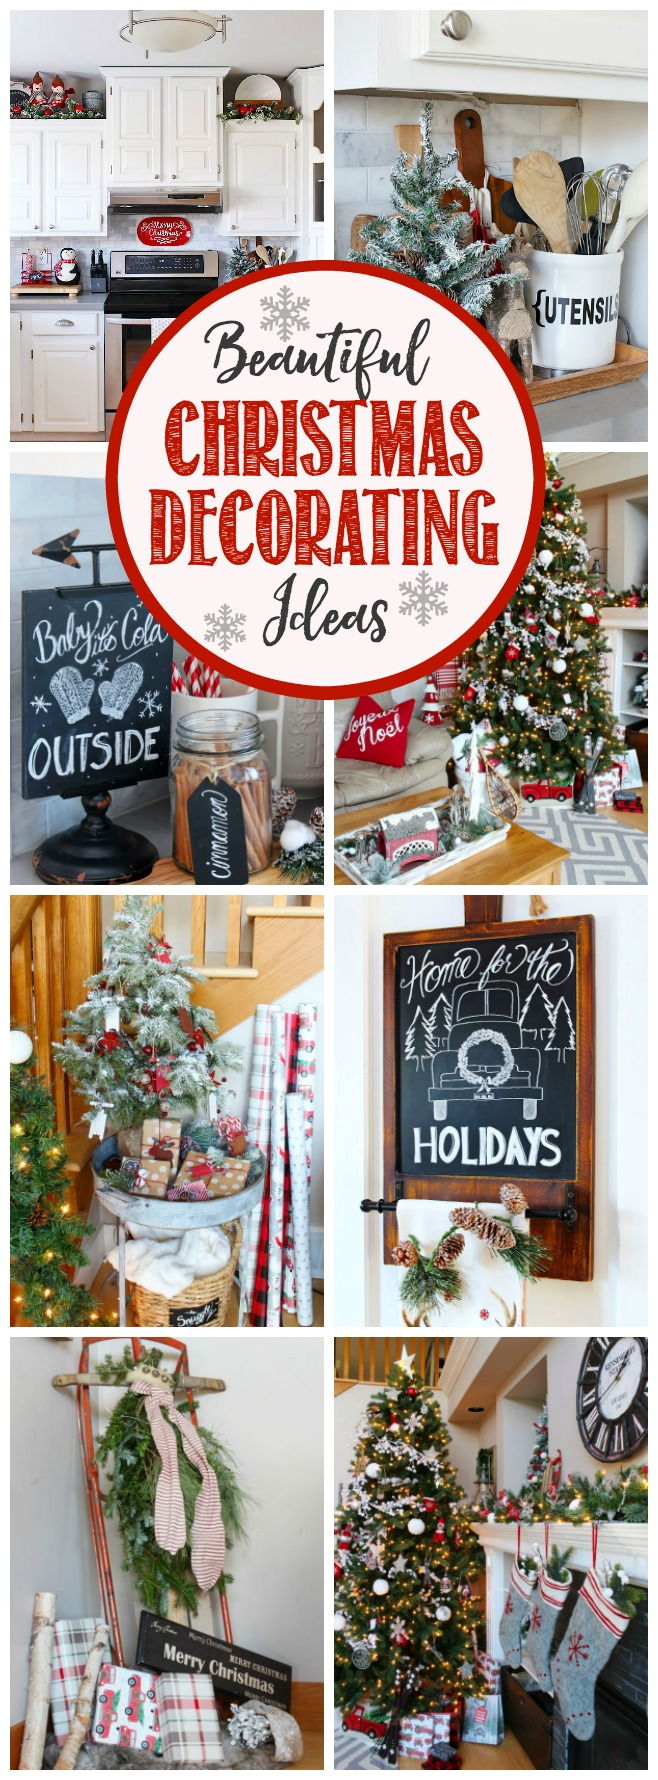 Fun and festive Christmas home tour. Lots of red and white with a cozy, Christmas cabin feel.